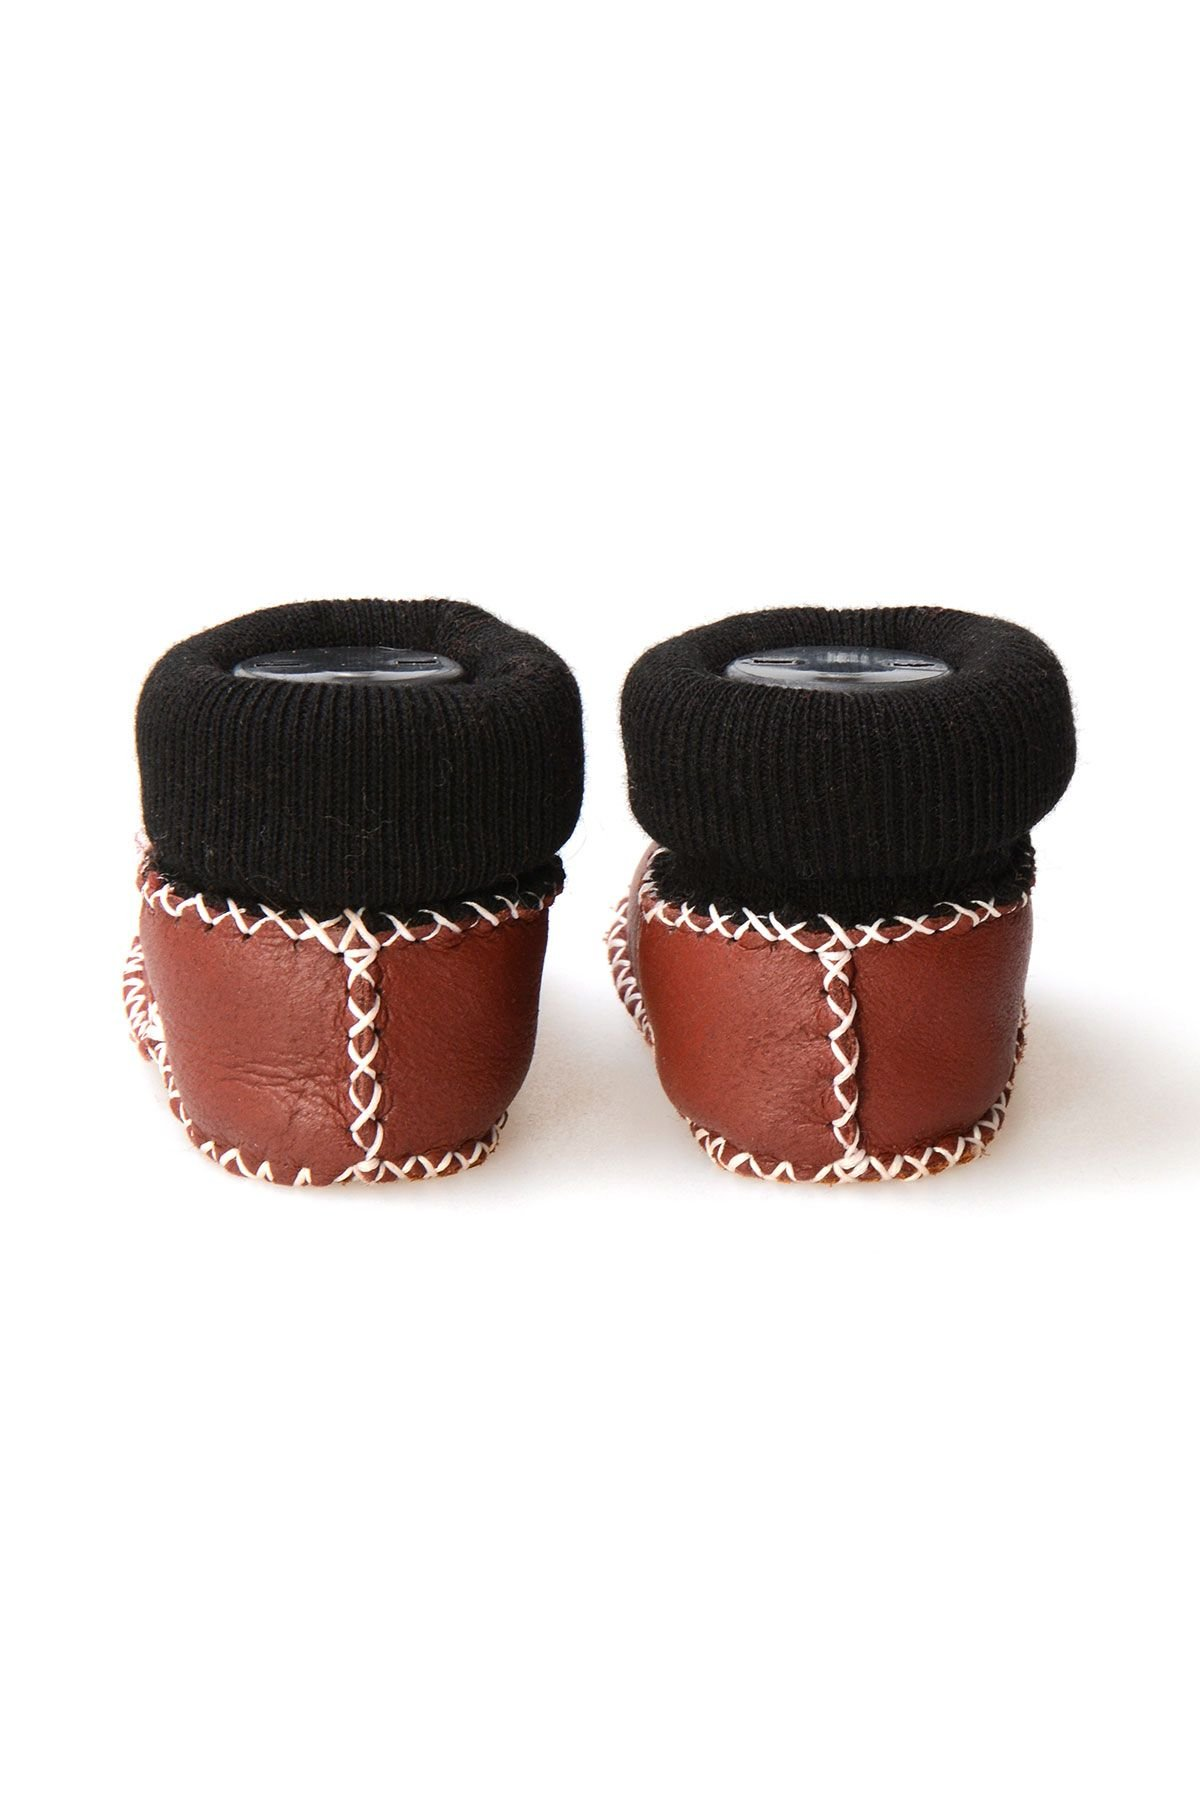 Pegia Shearling Baby's Booties With Socks 141107 Claret red